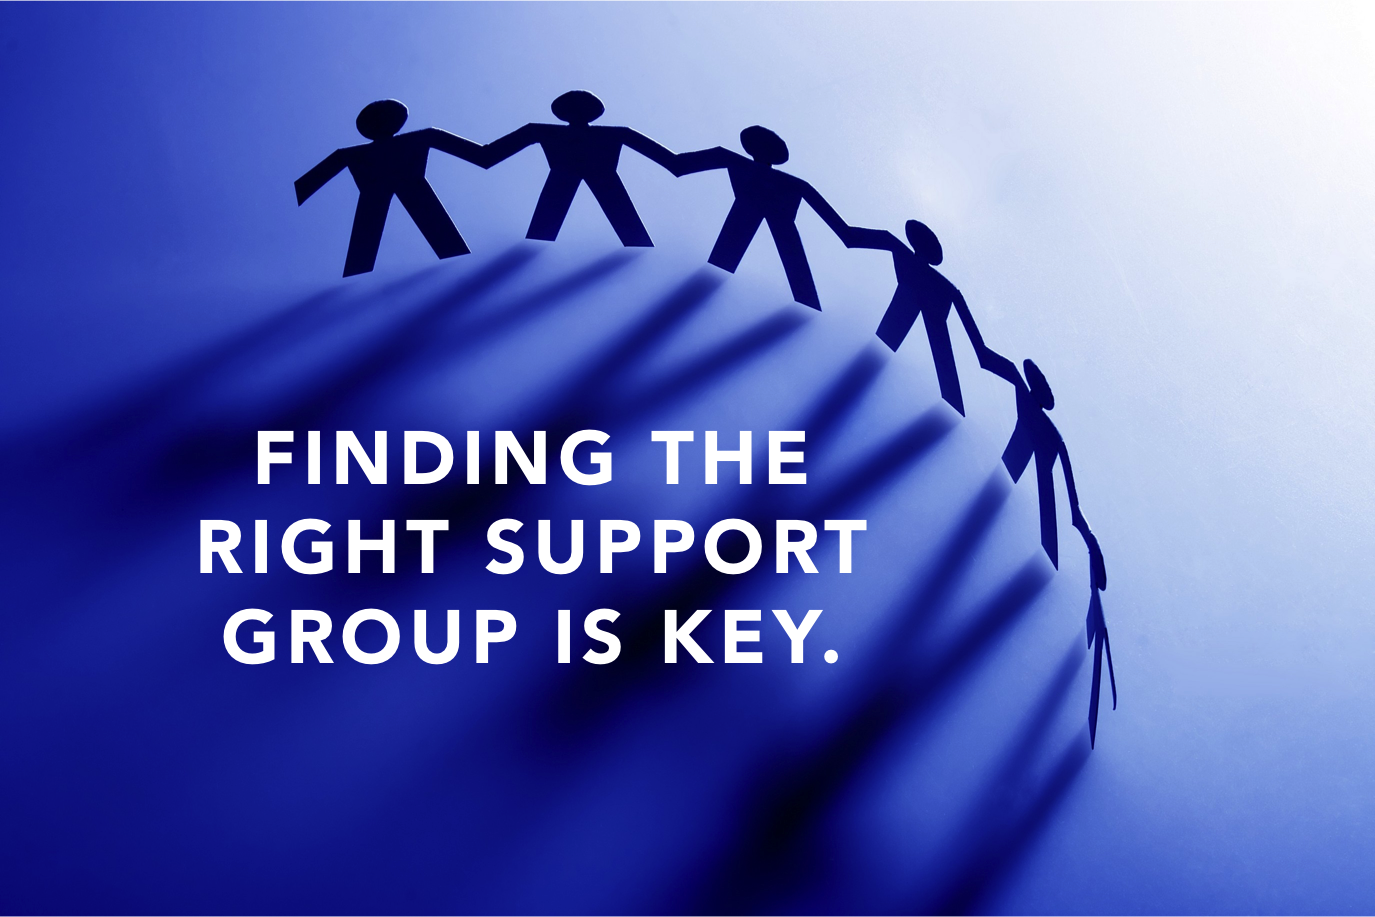 Finding the Right Prostate Cancer Support Group is the Key